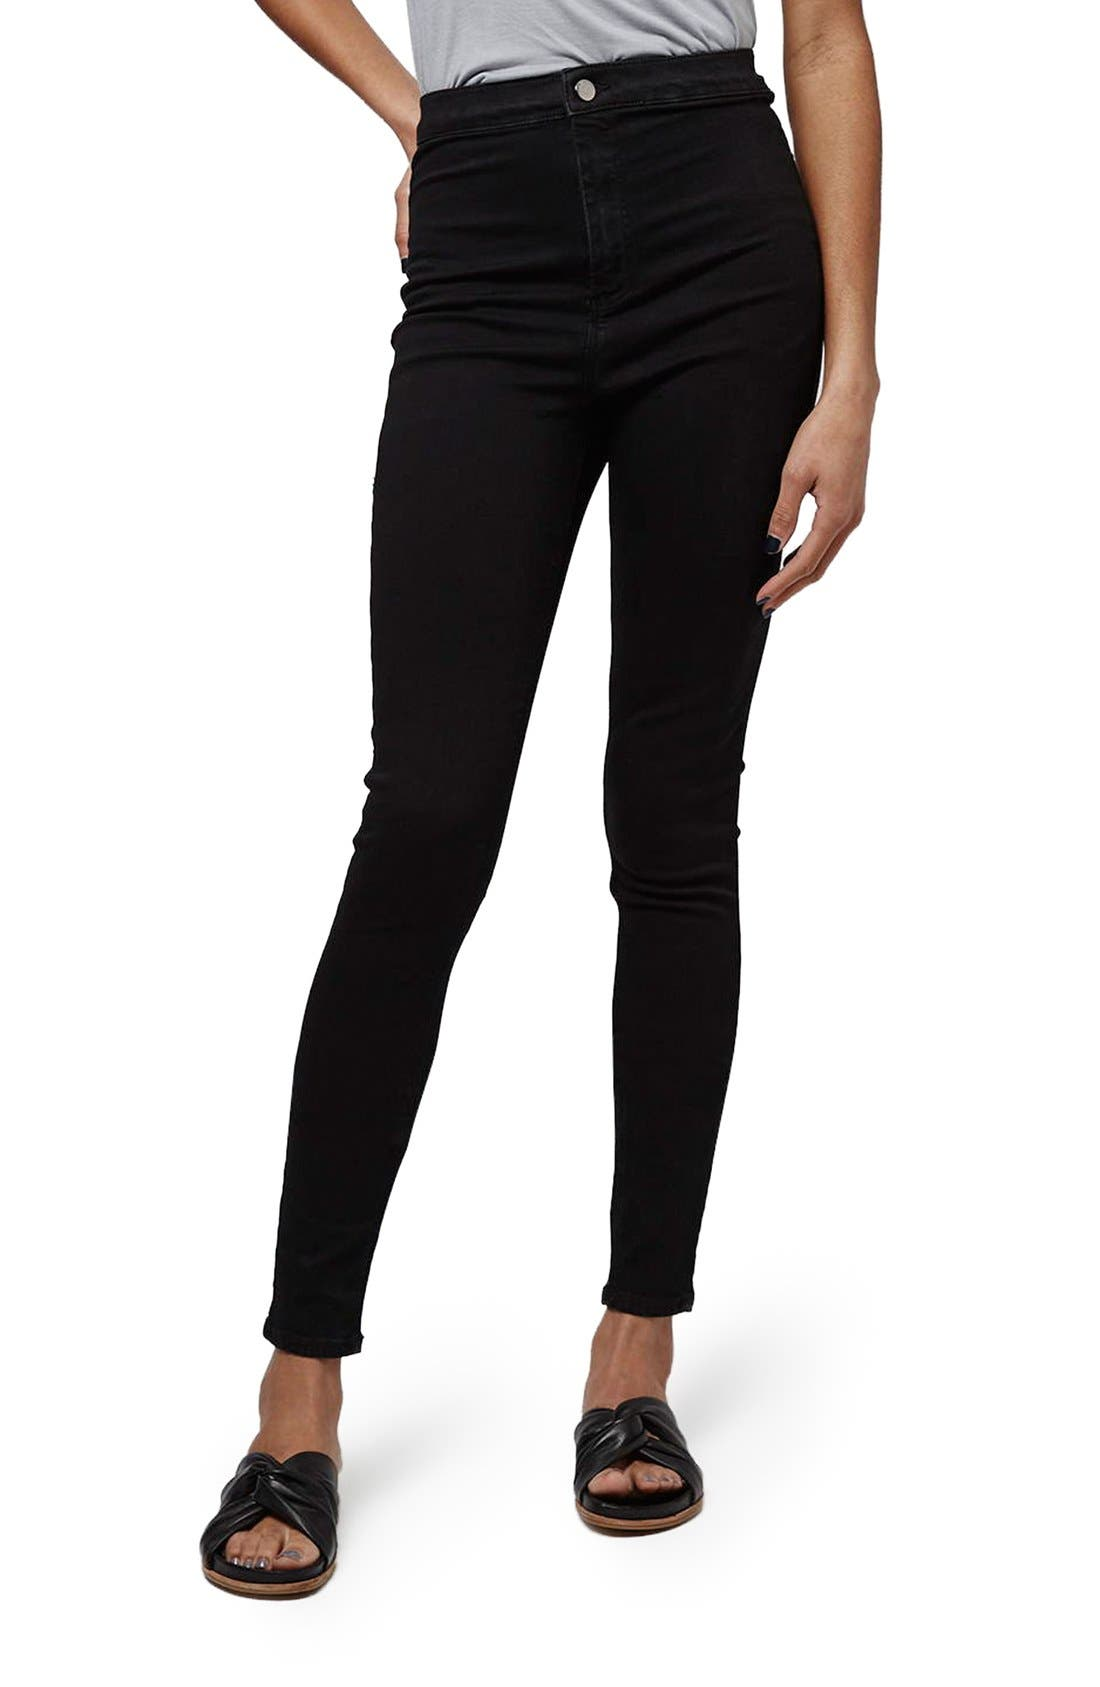 Main Image - Topshop 'Joni - Holding Power' High Waist Skinny Jeans (Tall)